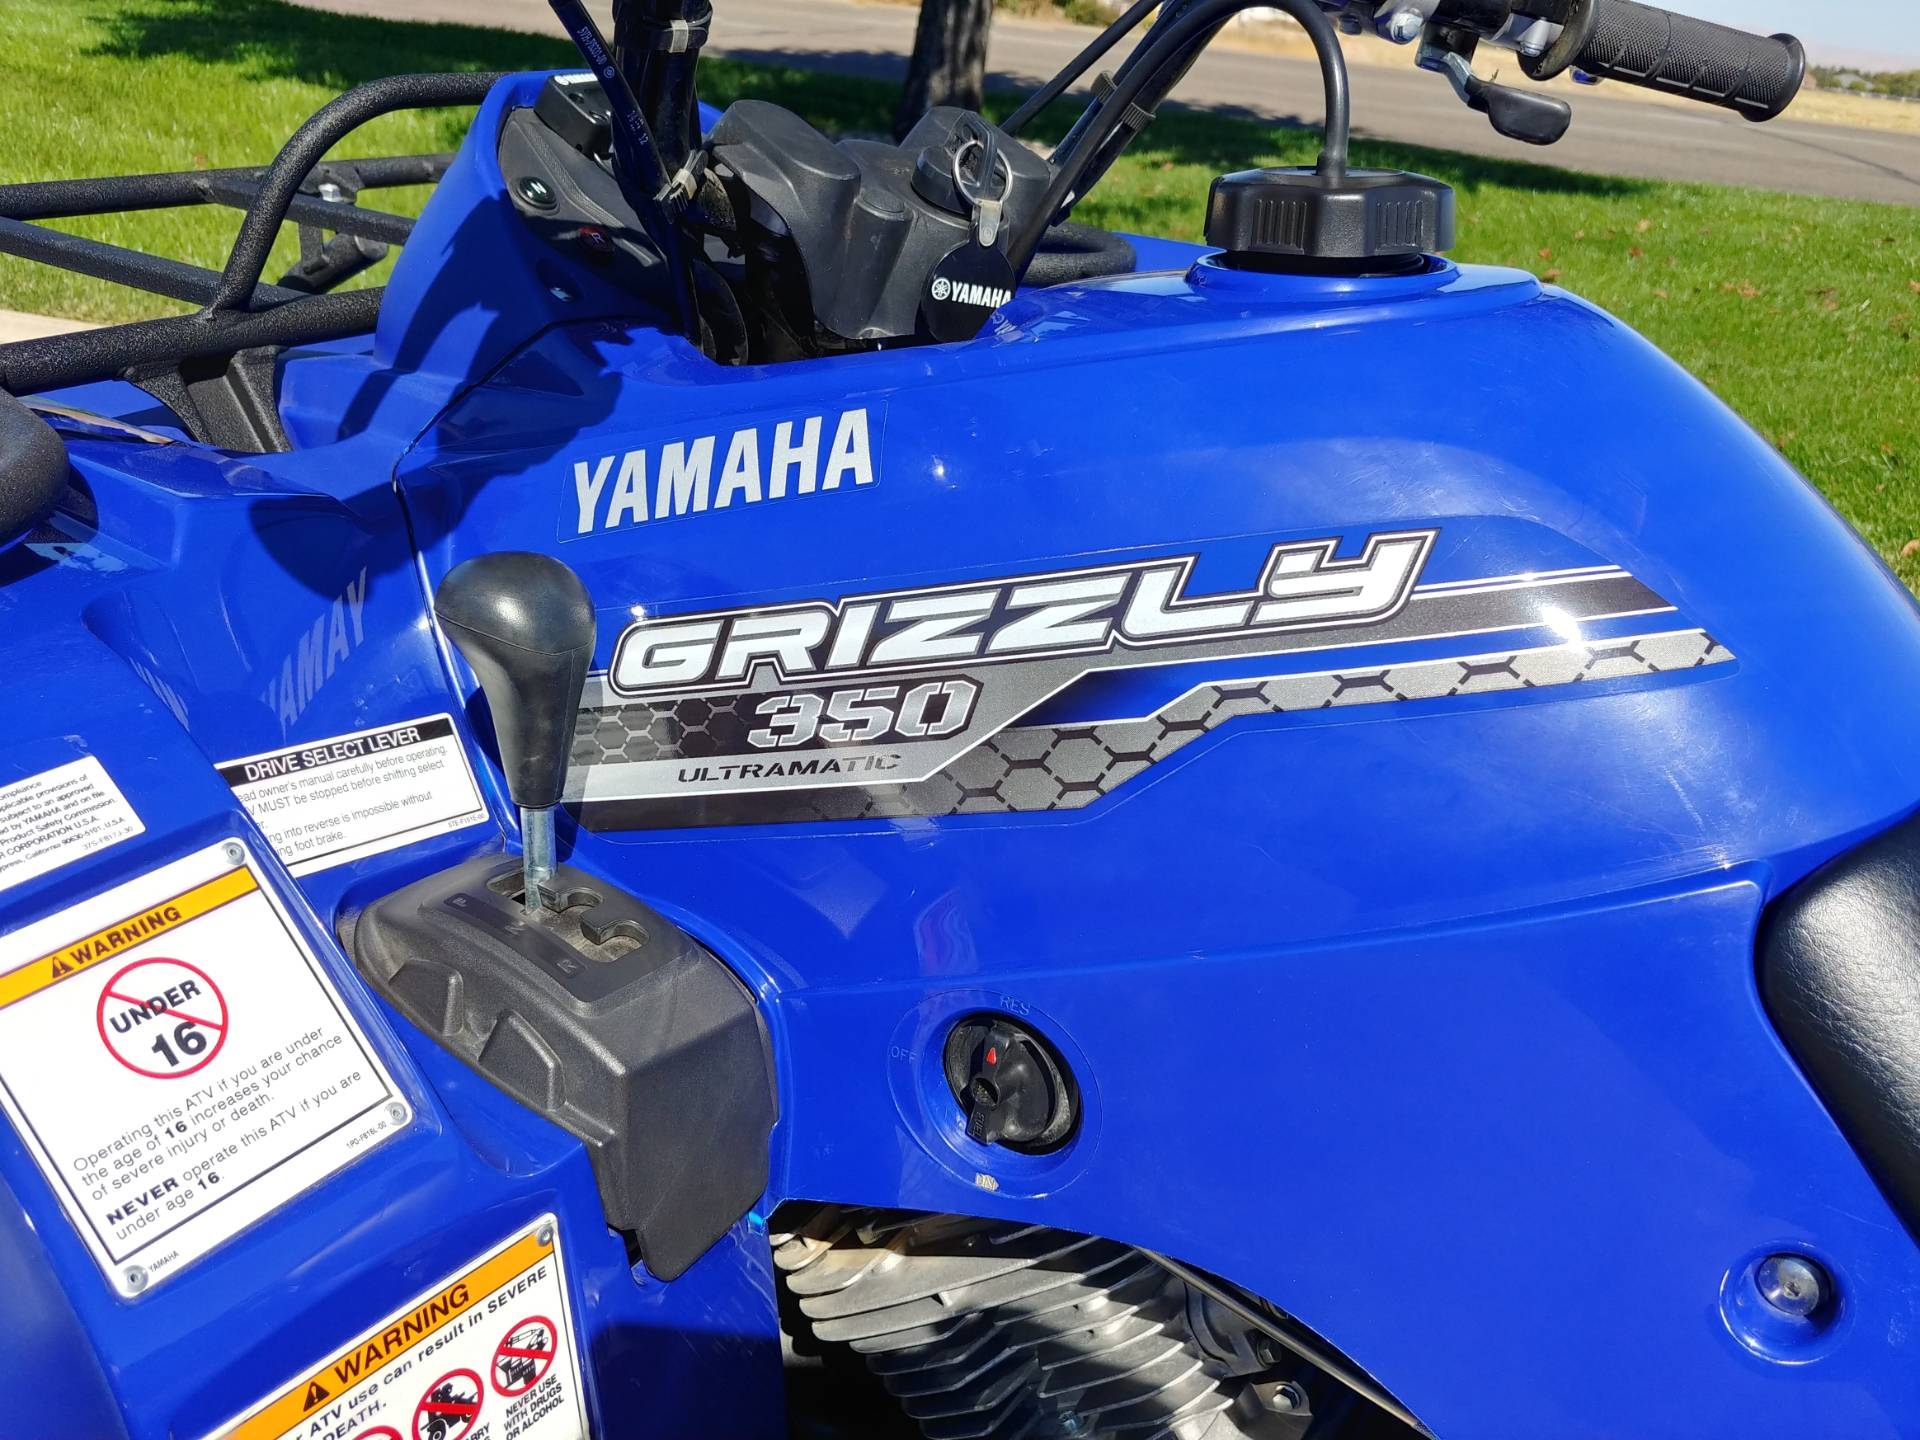 Yamaha Grizzly 350 Owners Manual 1998 600 Ultramatic Wiring Diagram 2014 2wd In Meridian Idaho